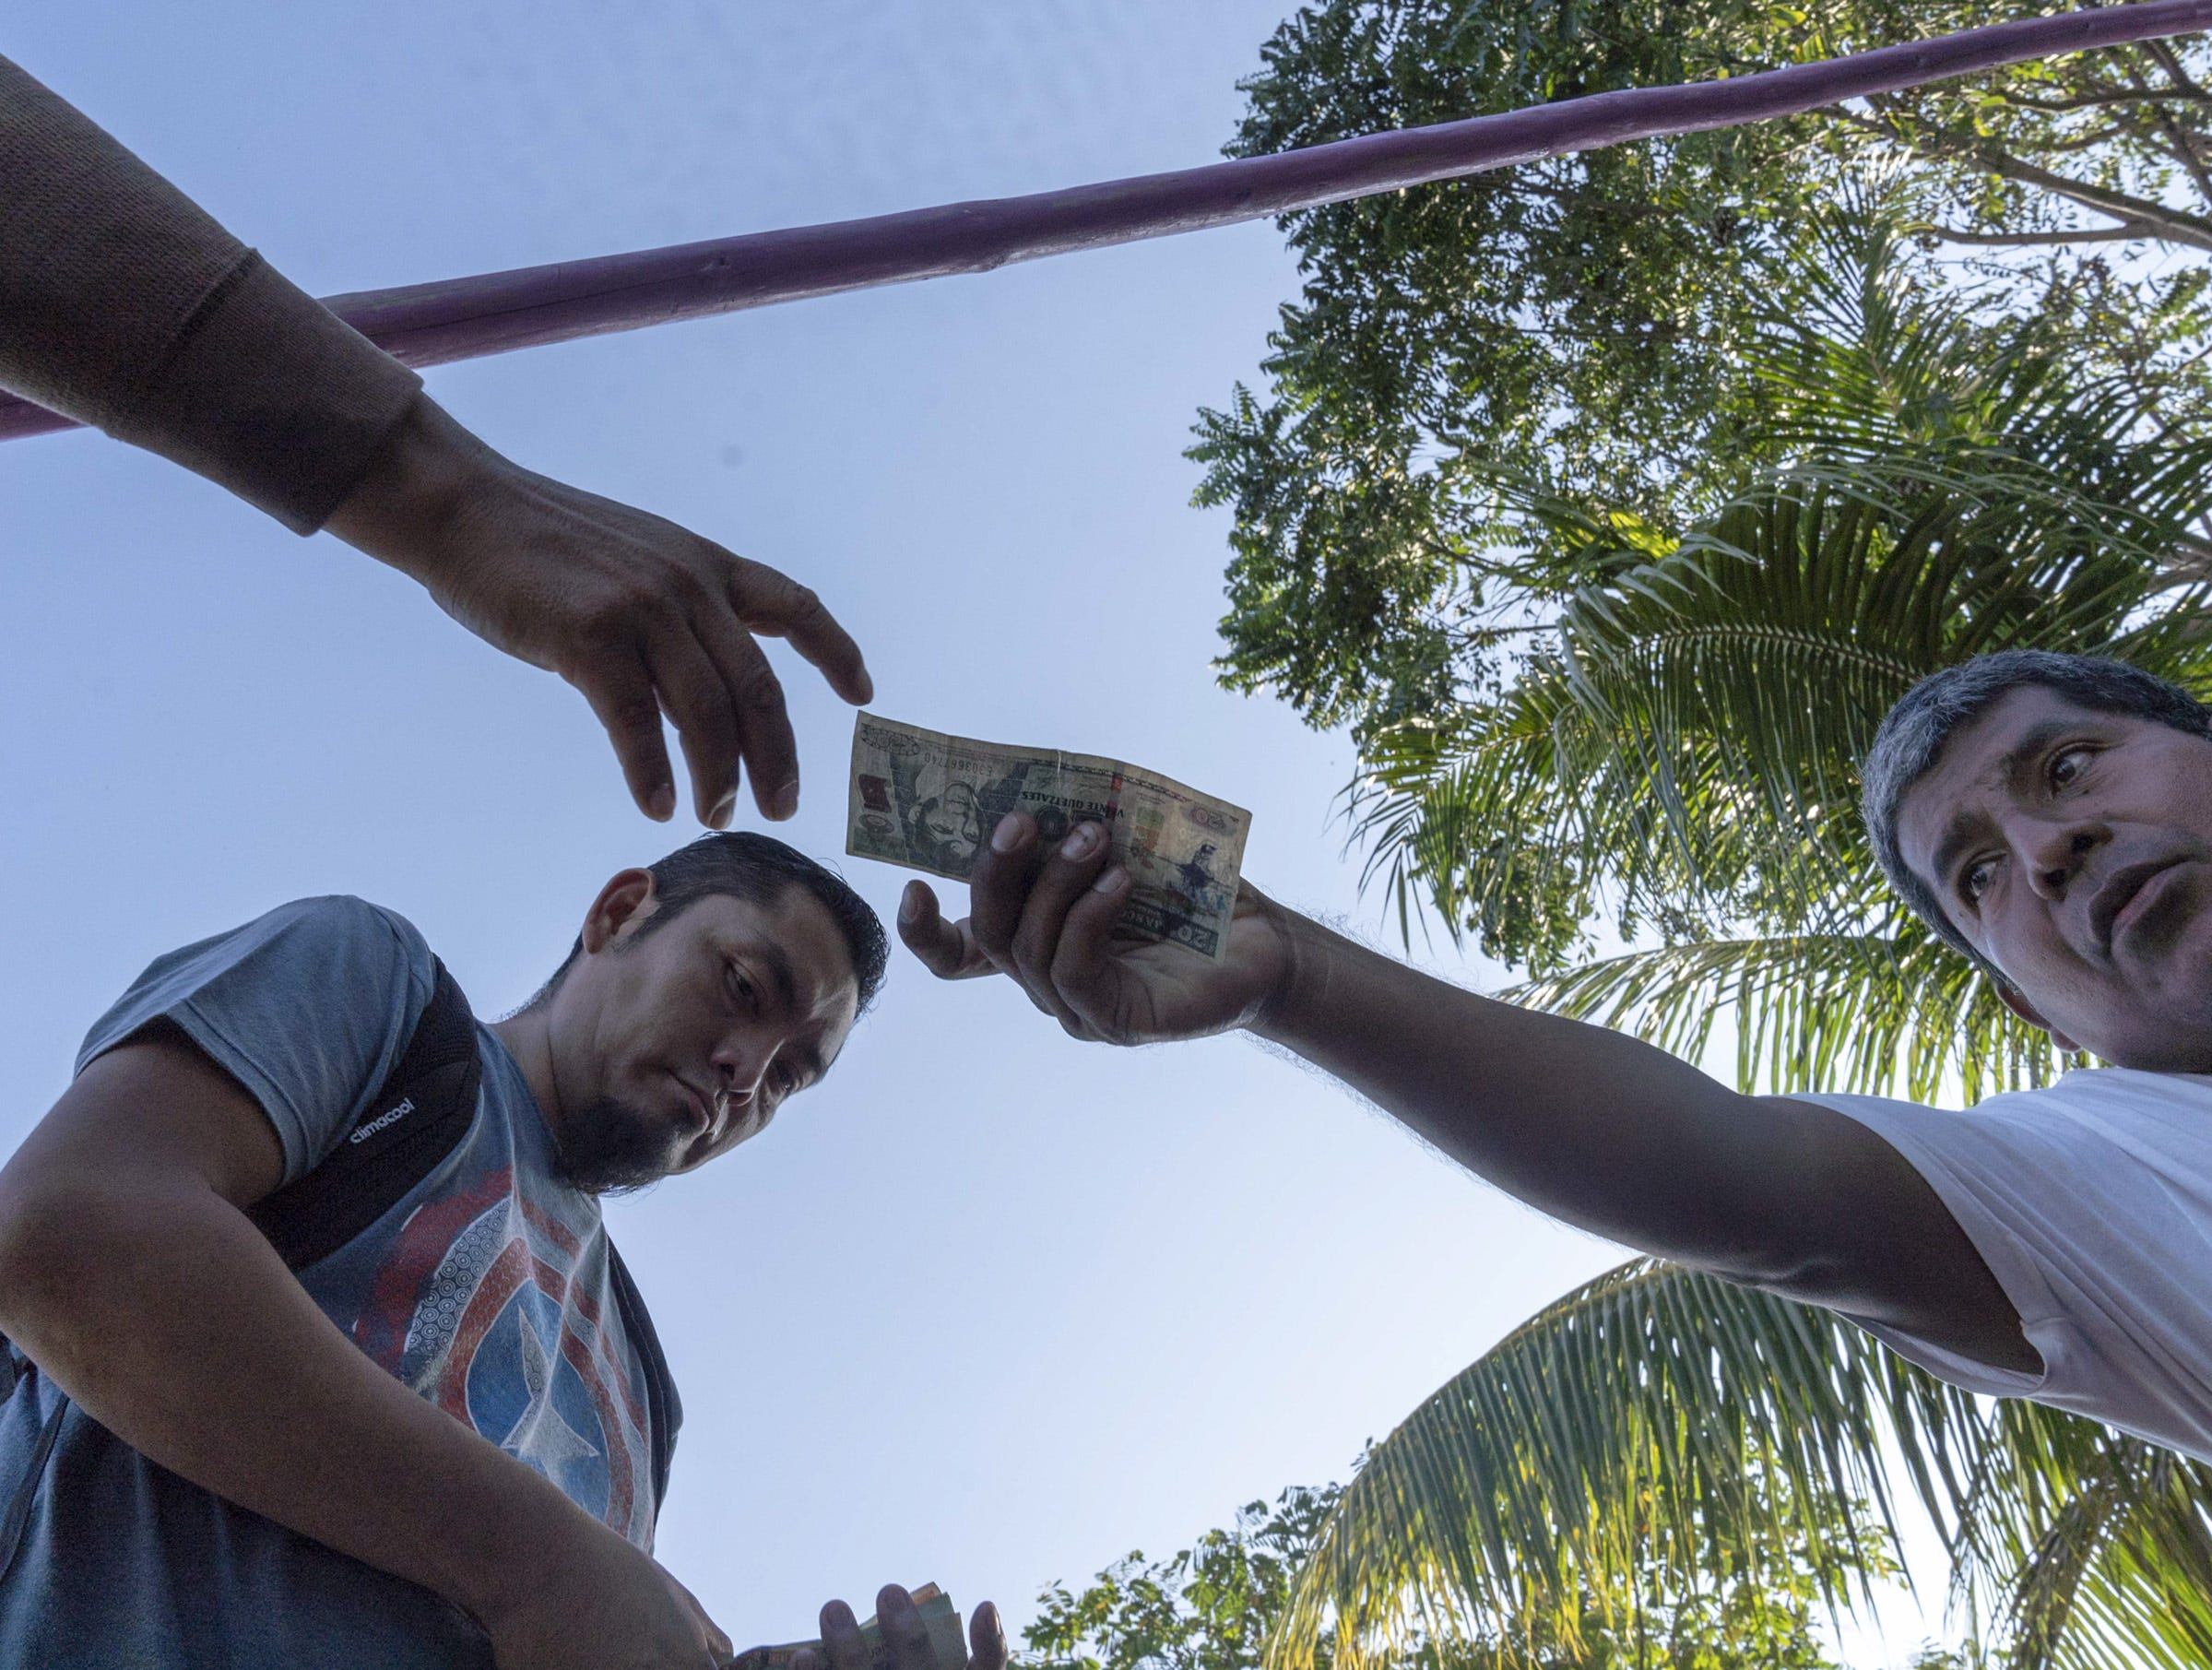 Border crossers from Guatemala pay money after crossing in a raft at Cuidad Hidalgo, Mexico.